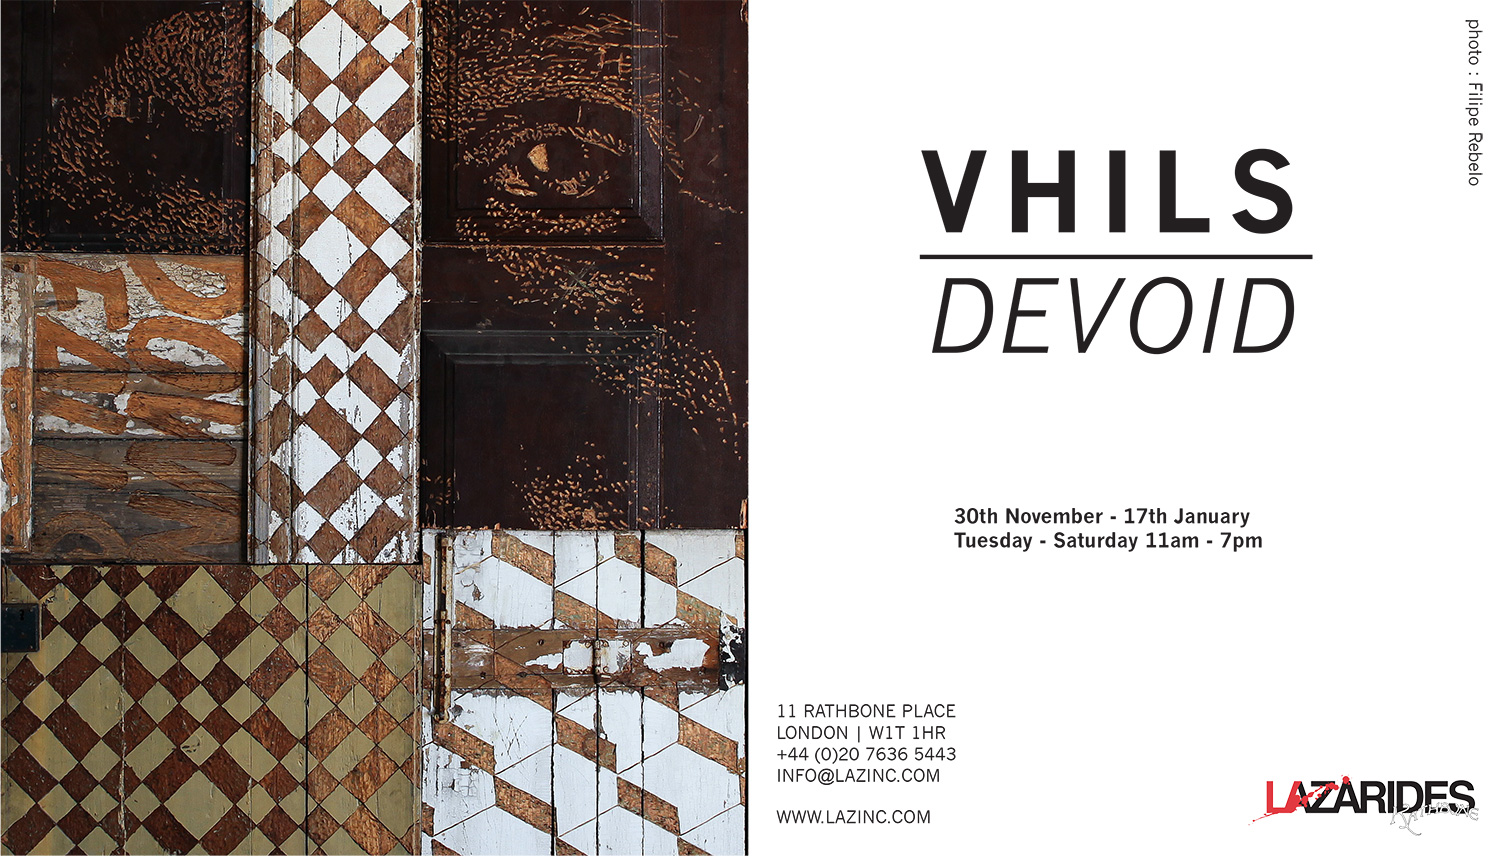 VHILS--DEVOID-general (2)